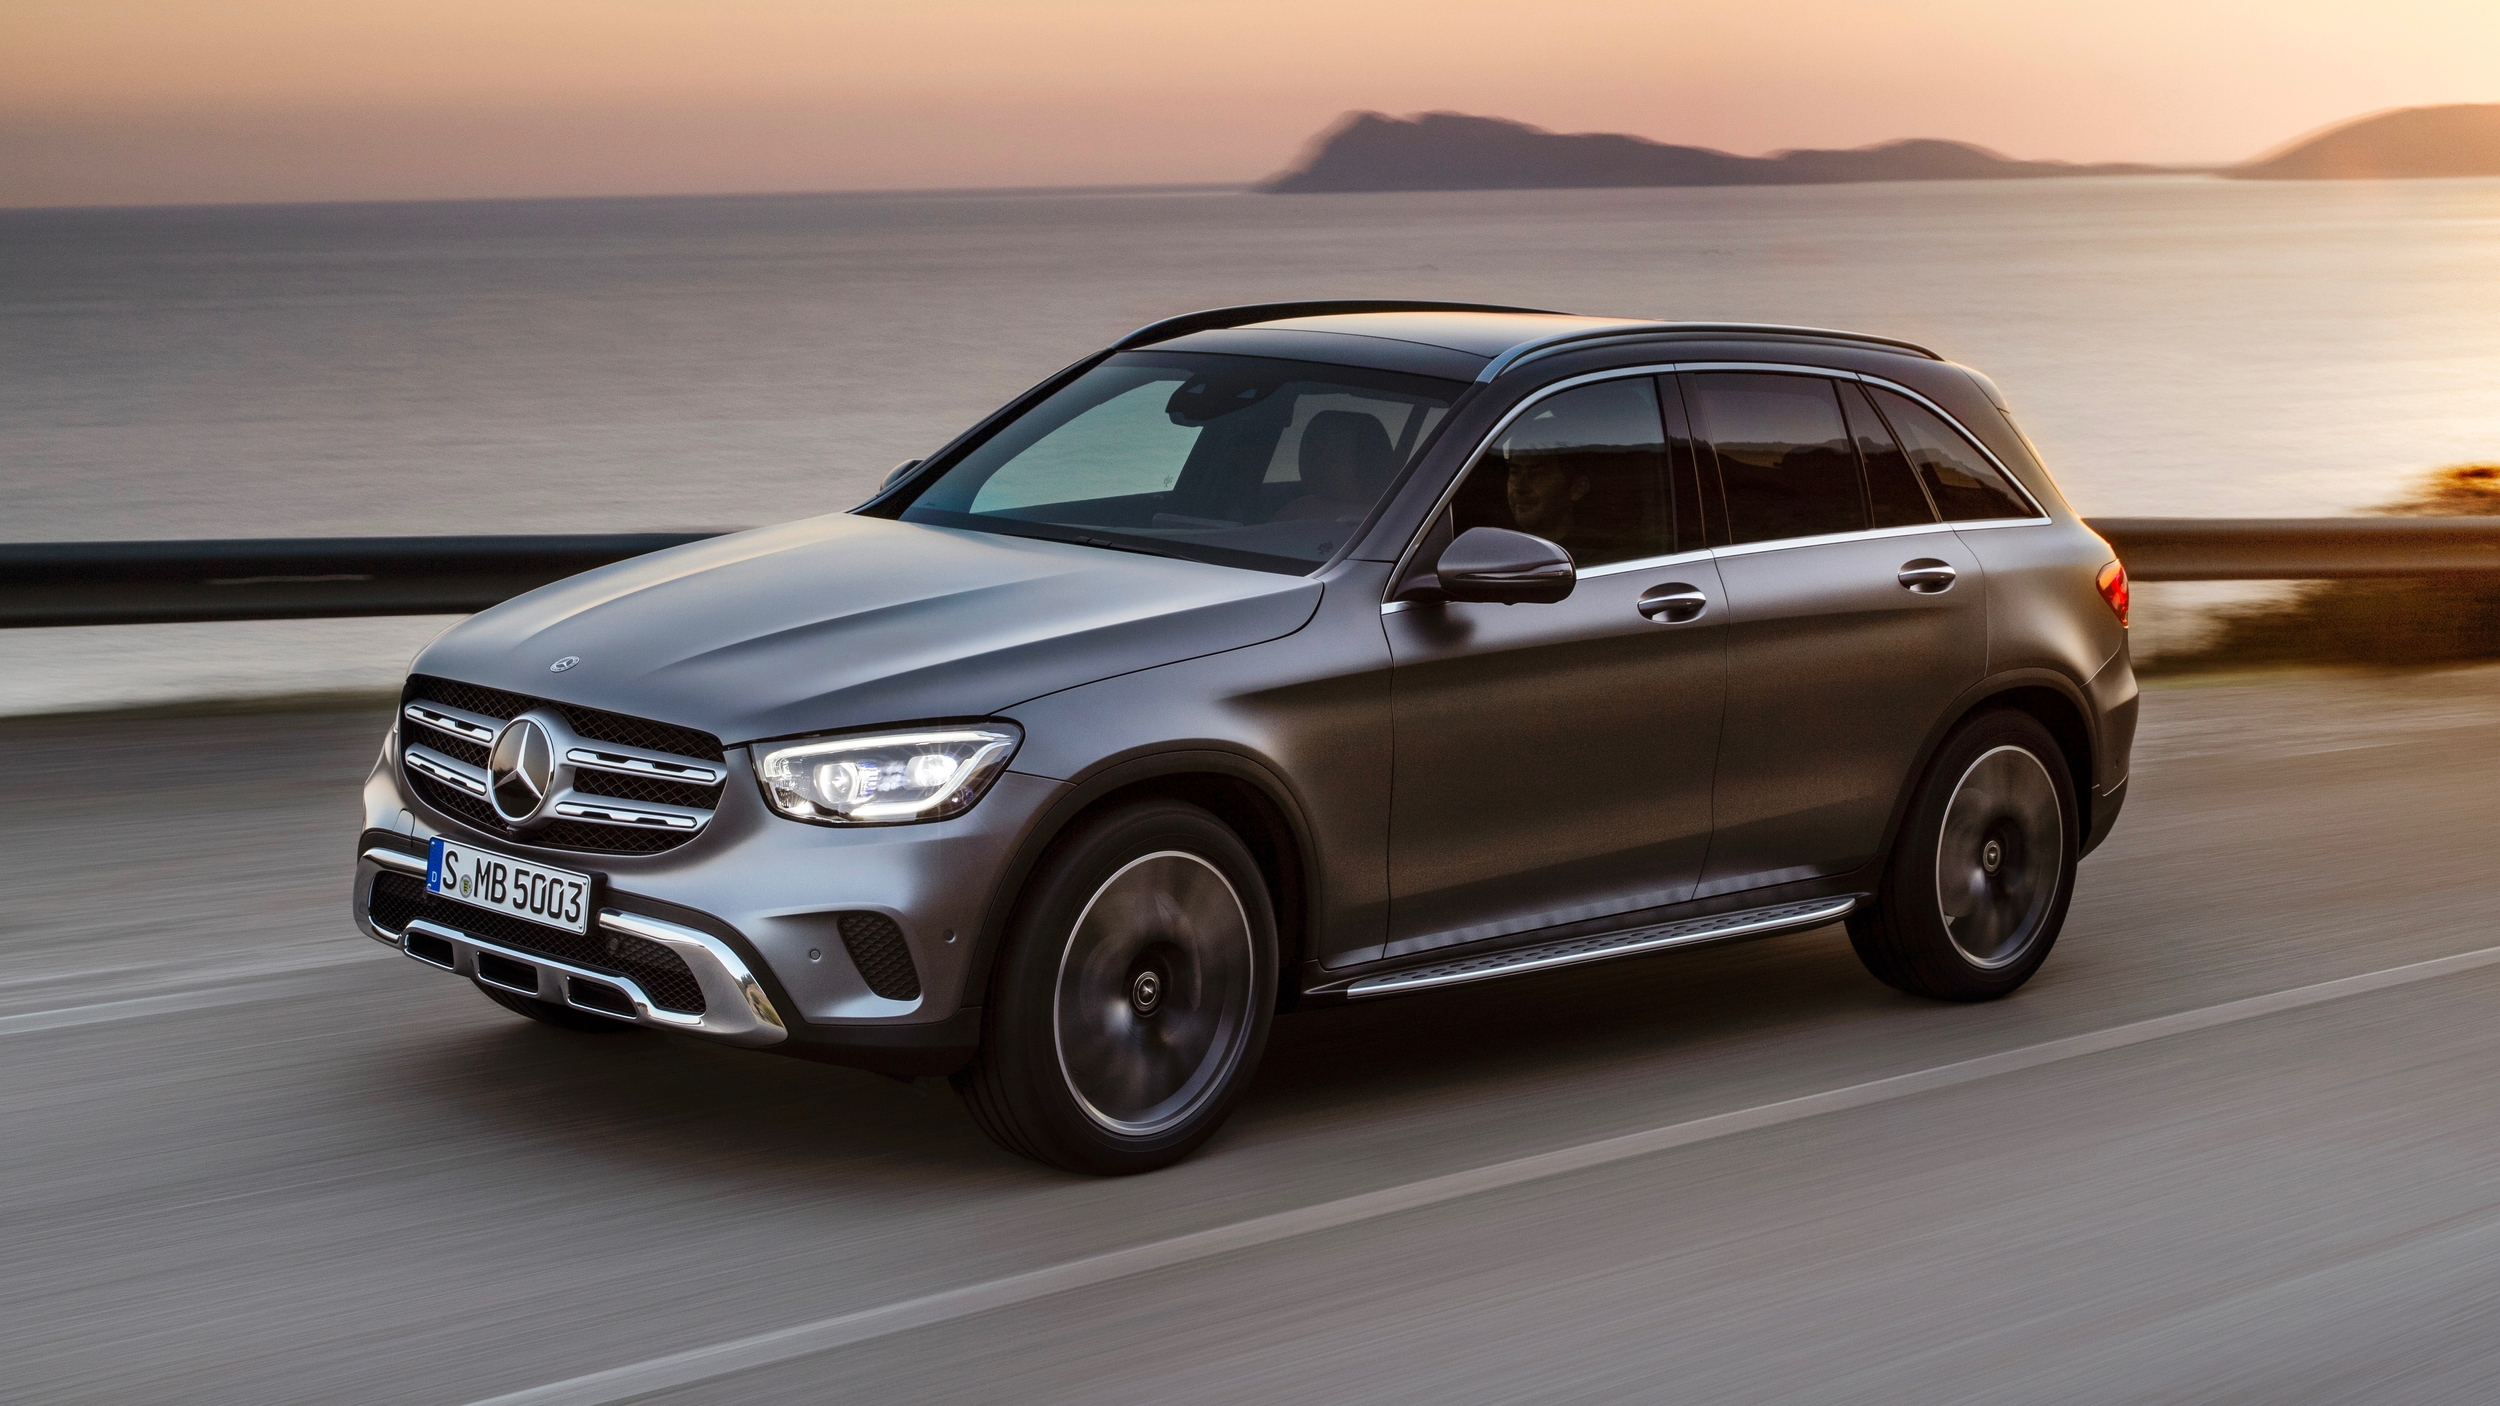 2020 Mercedes-Benz GLC-Class Refresh Adds New Tech, Engine